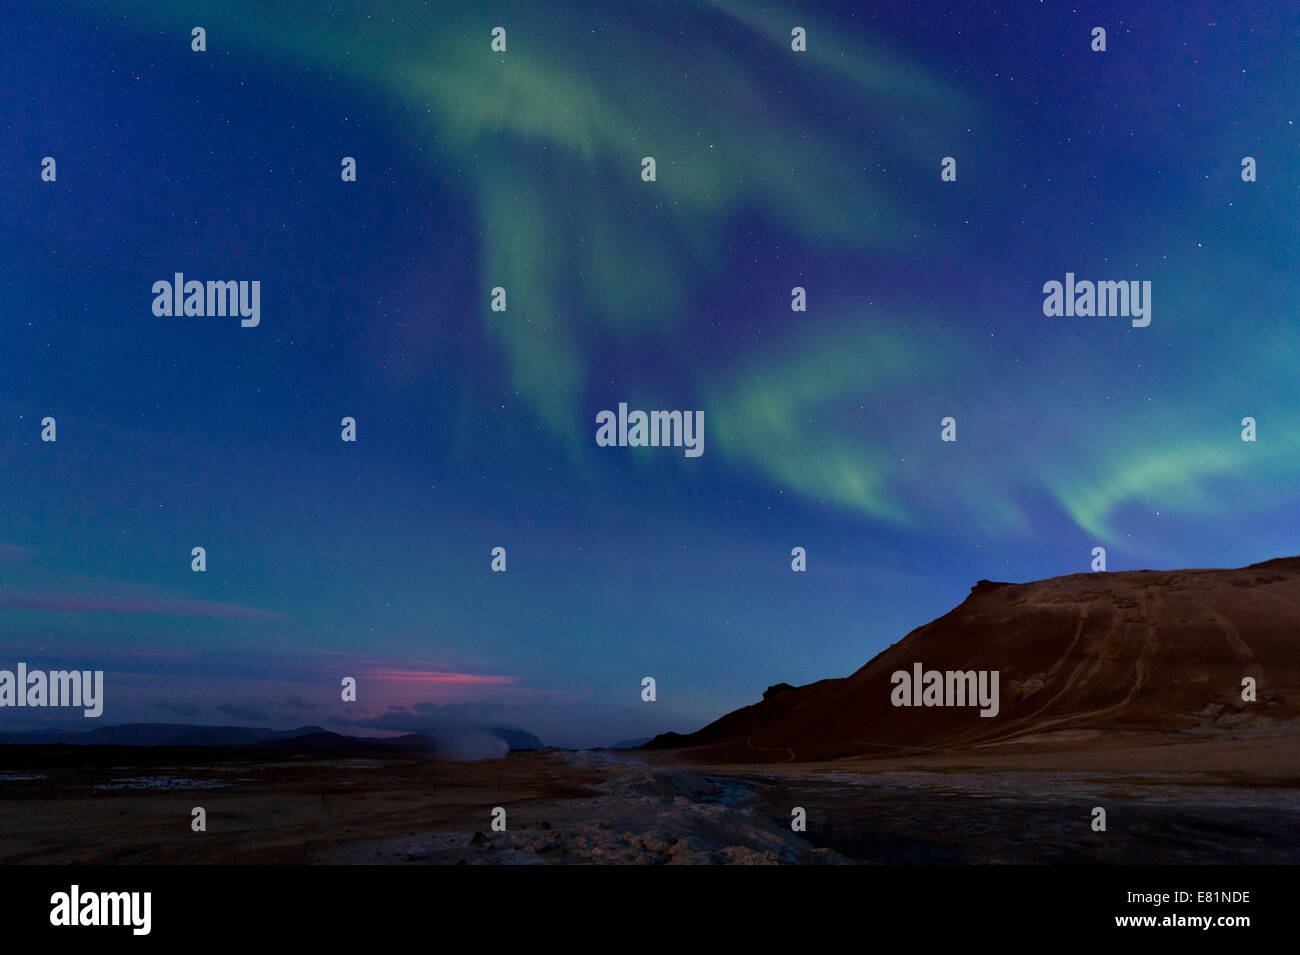 Northern lights, glow from a fissure eruption at the Holuhraun lava field, solfatara, fumaroles, sulphur and other - Stock Image